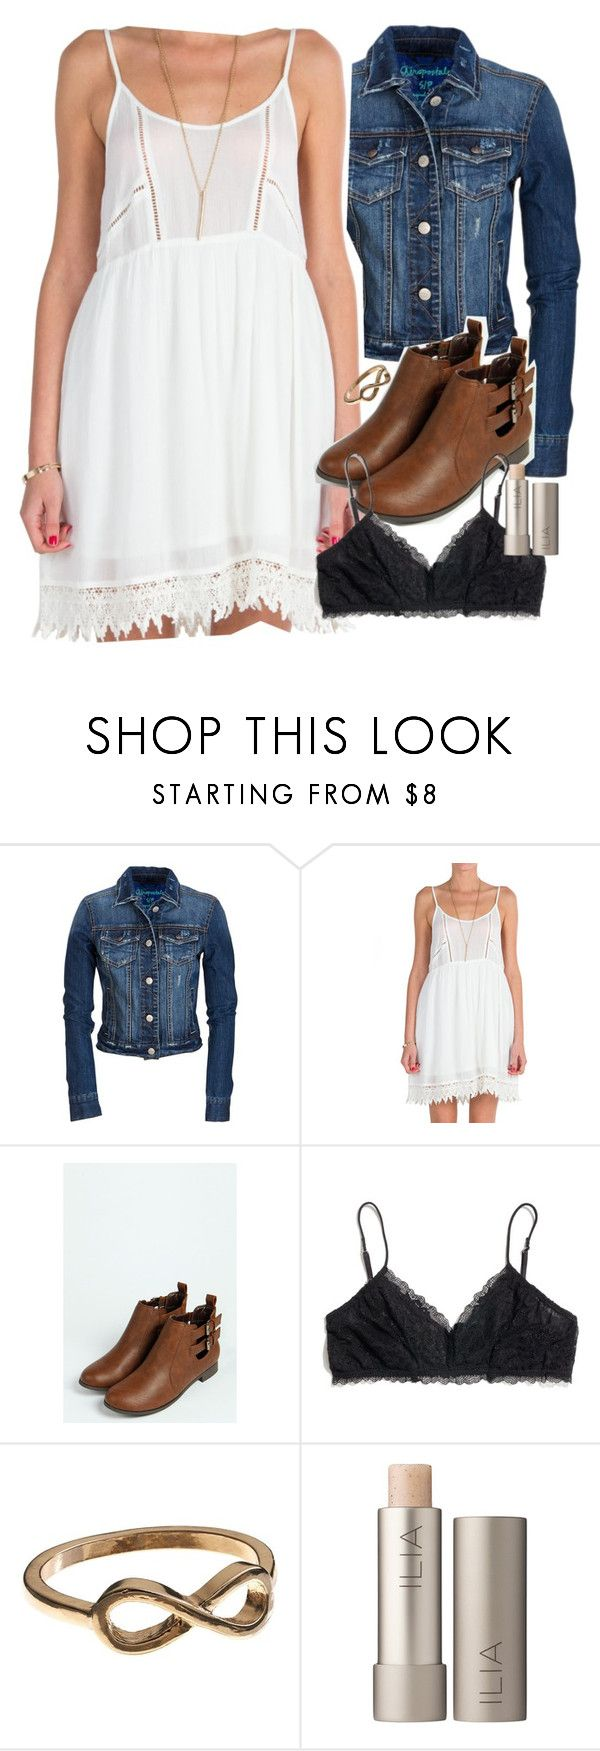 Allison Inspired Summer Outfit with Flats by veterization on Polyvore featuring Lush Clothing, Aéropostale, Madewell, Boohoo, Apt. 9 and Ilia